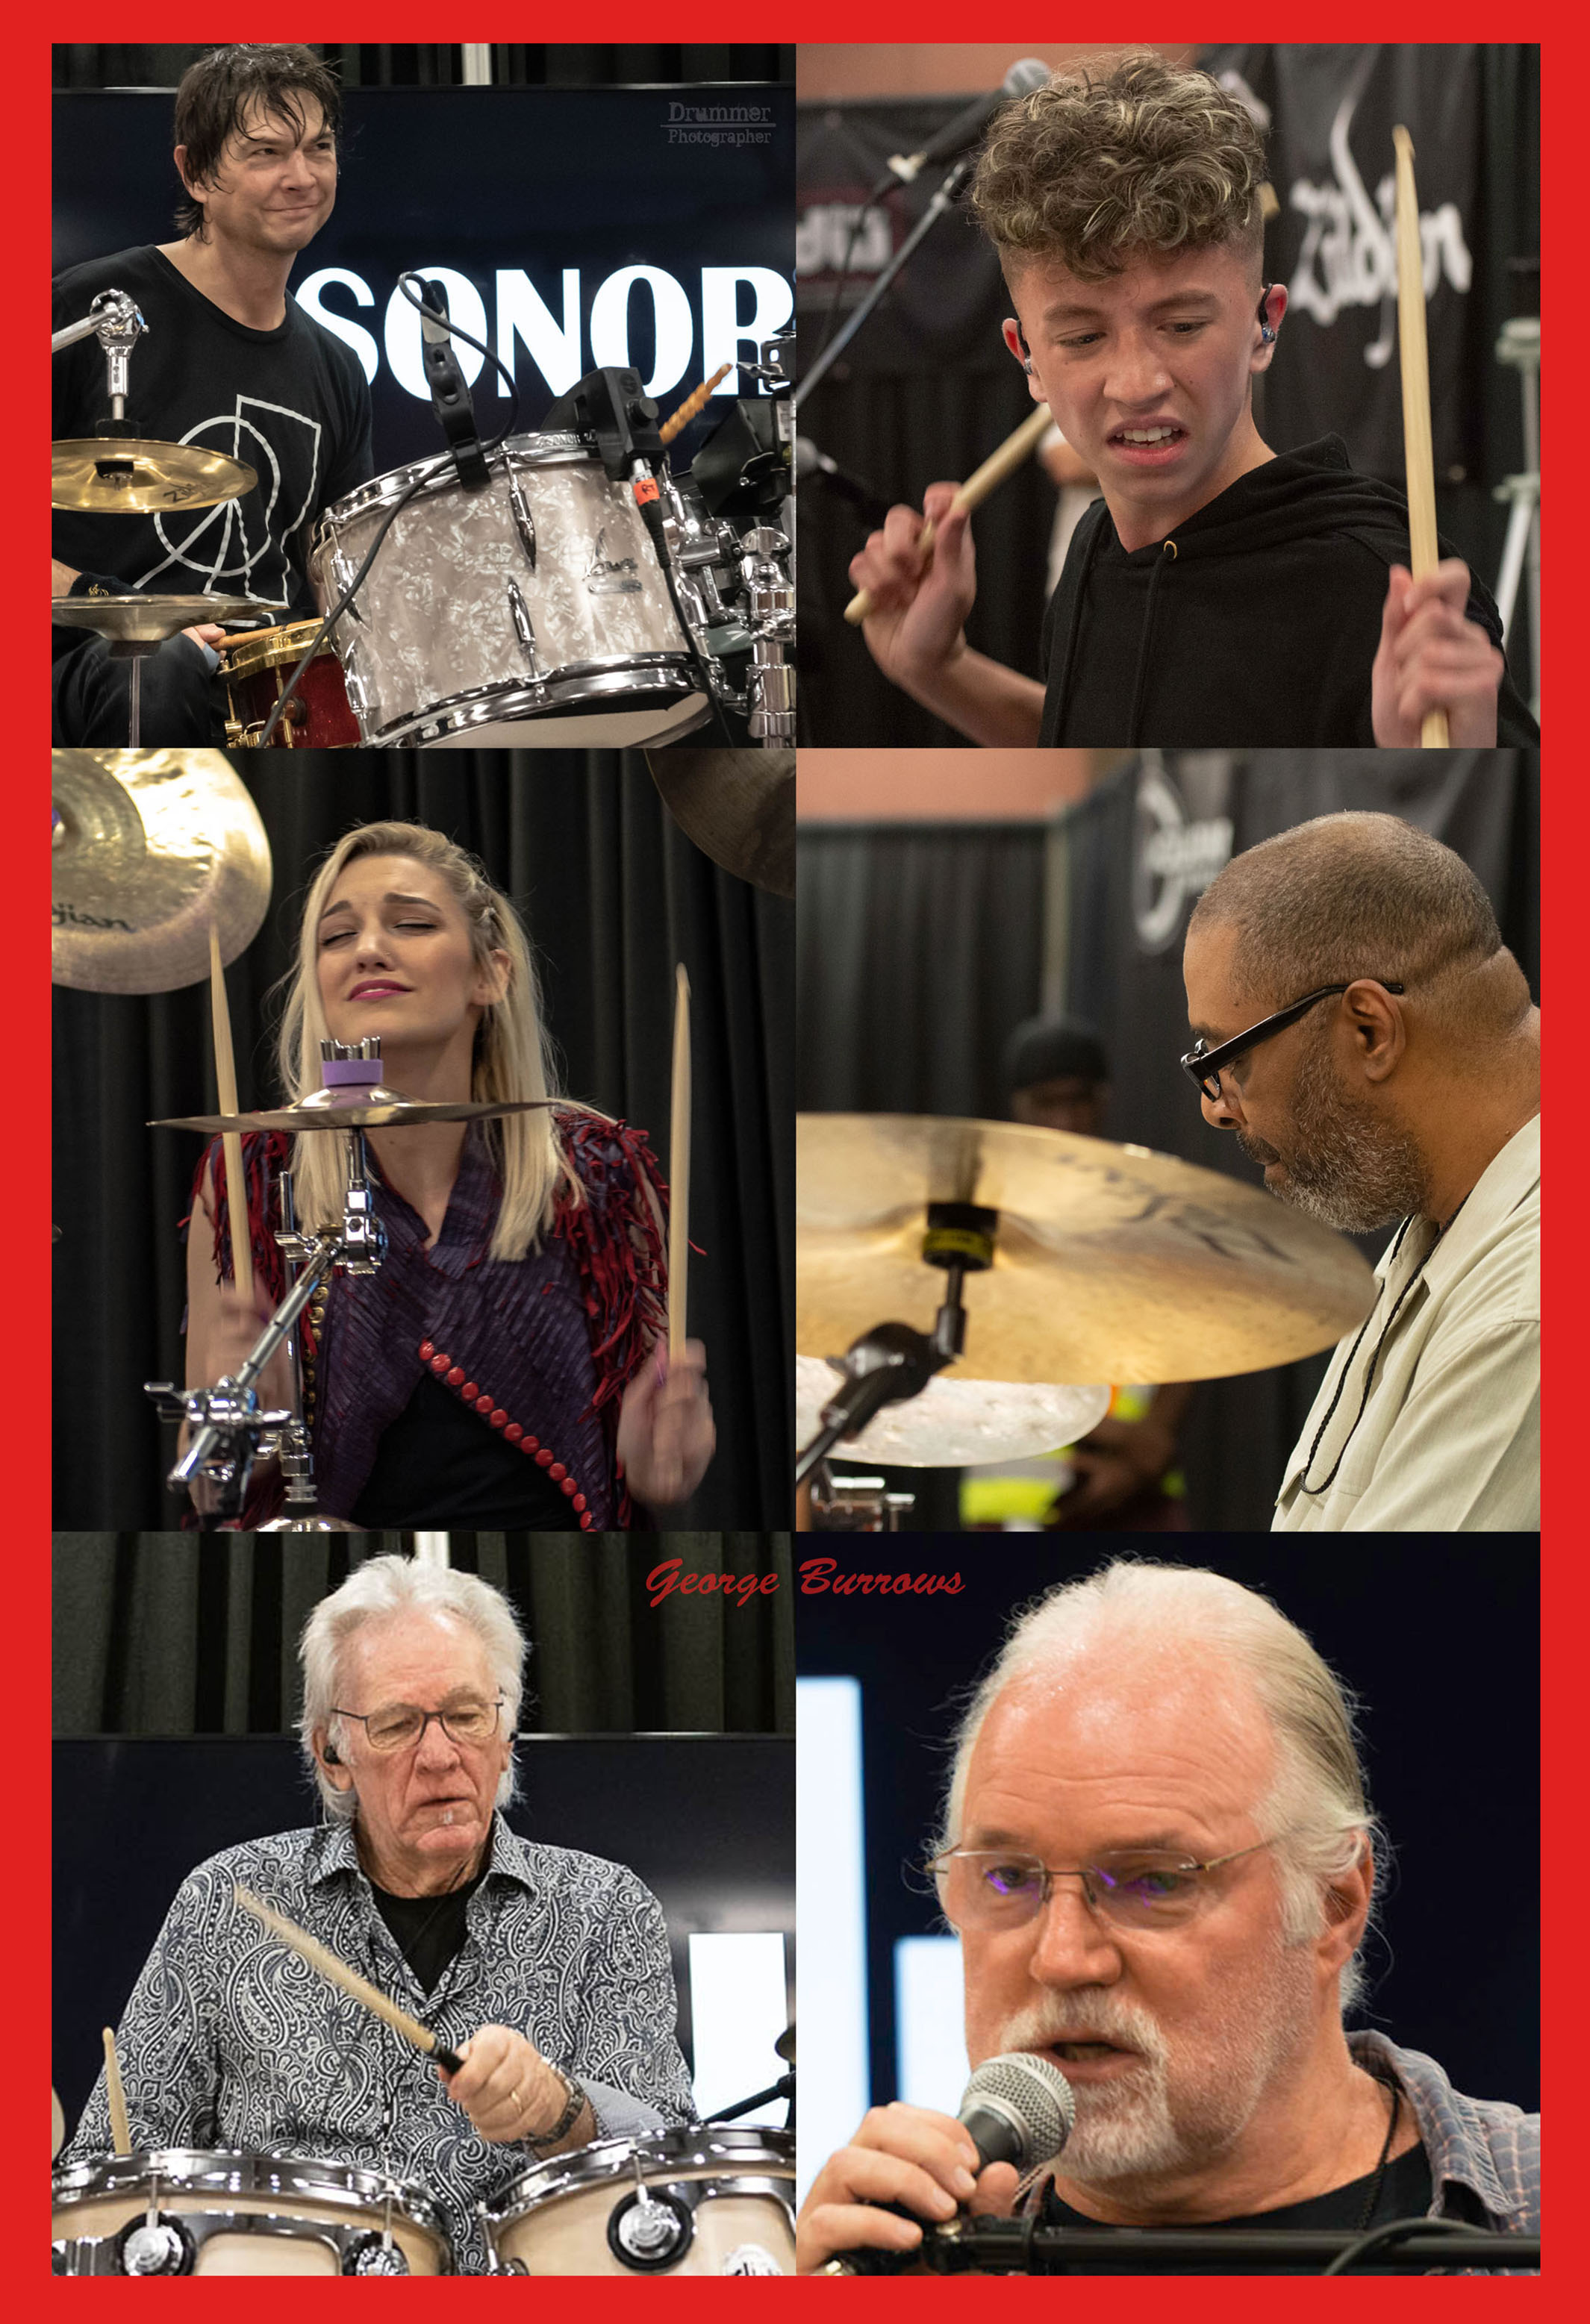 The two day clinic and master class roster - Paul Wertico, Denny Seiwell, Carl Allen, Perry Wilson, Glenn Kotche, and Jake D